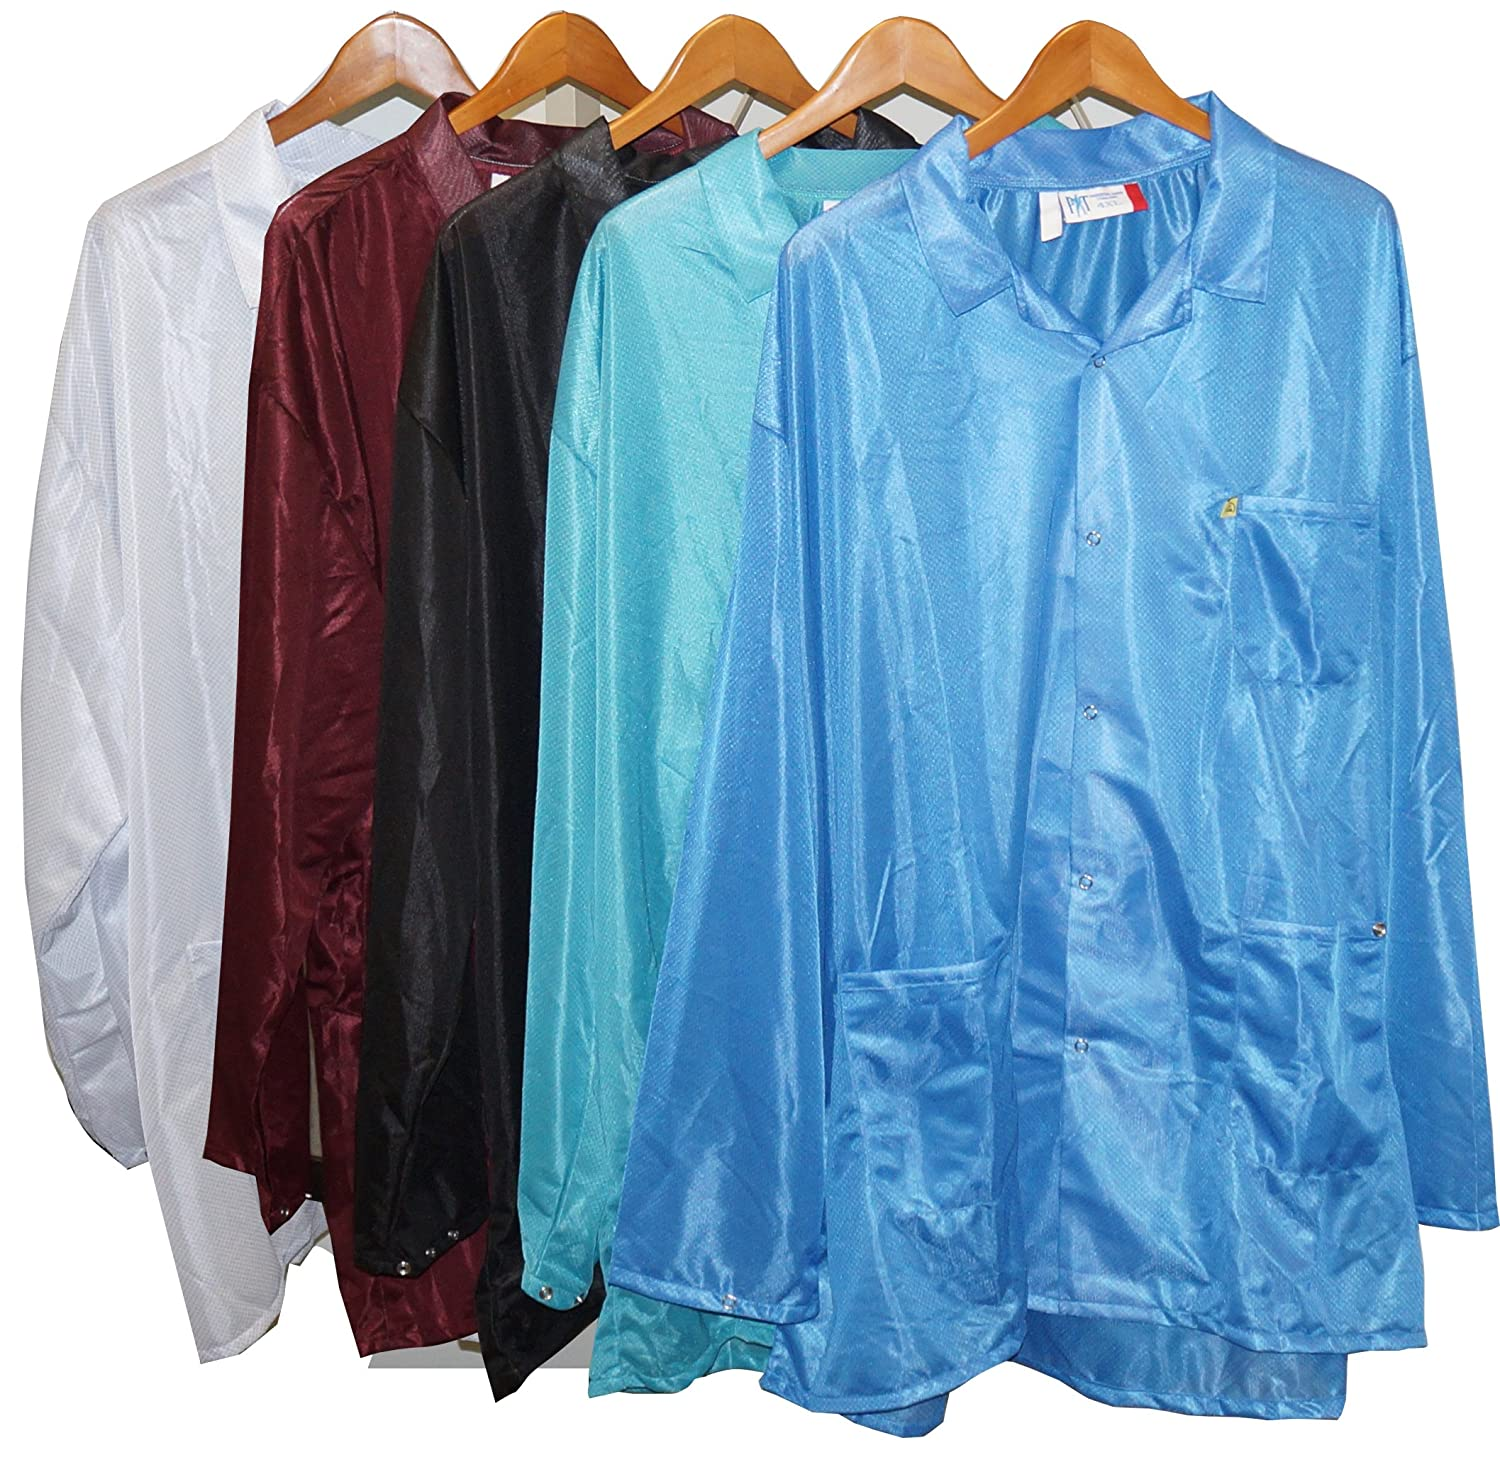 Anti-Static Lab Coat Small StaticTek Full Sleeve Snap Cuff ESD Jacket ESD Smocks with High ESD Protection Certified Level 3 Static Shielding Light Weight TT/_JKC9022SPLB Light Blue